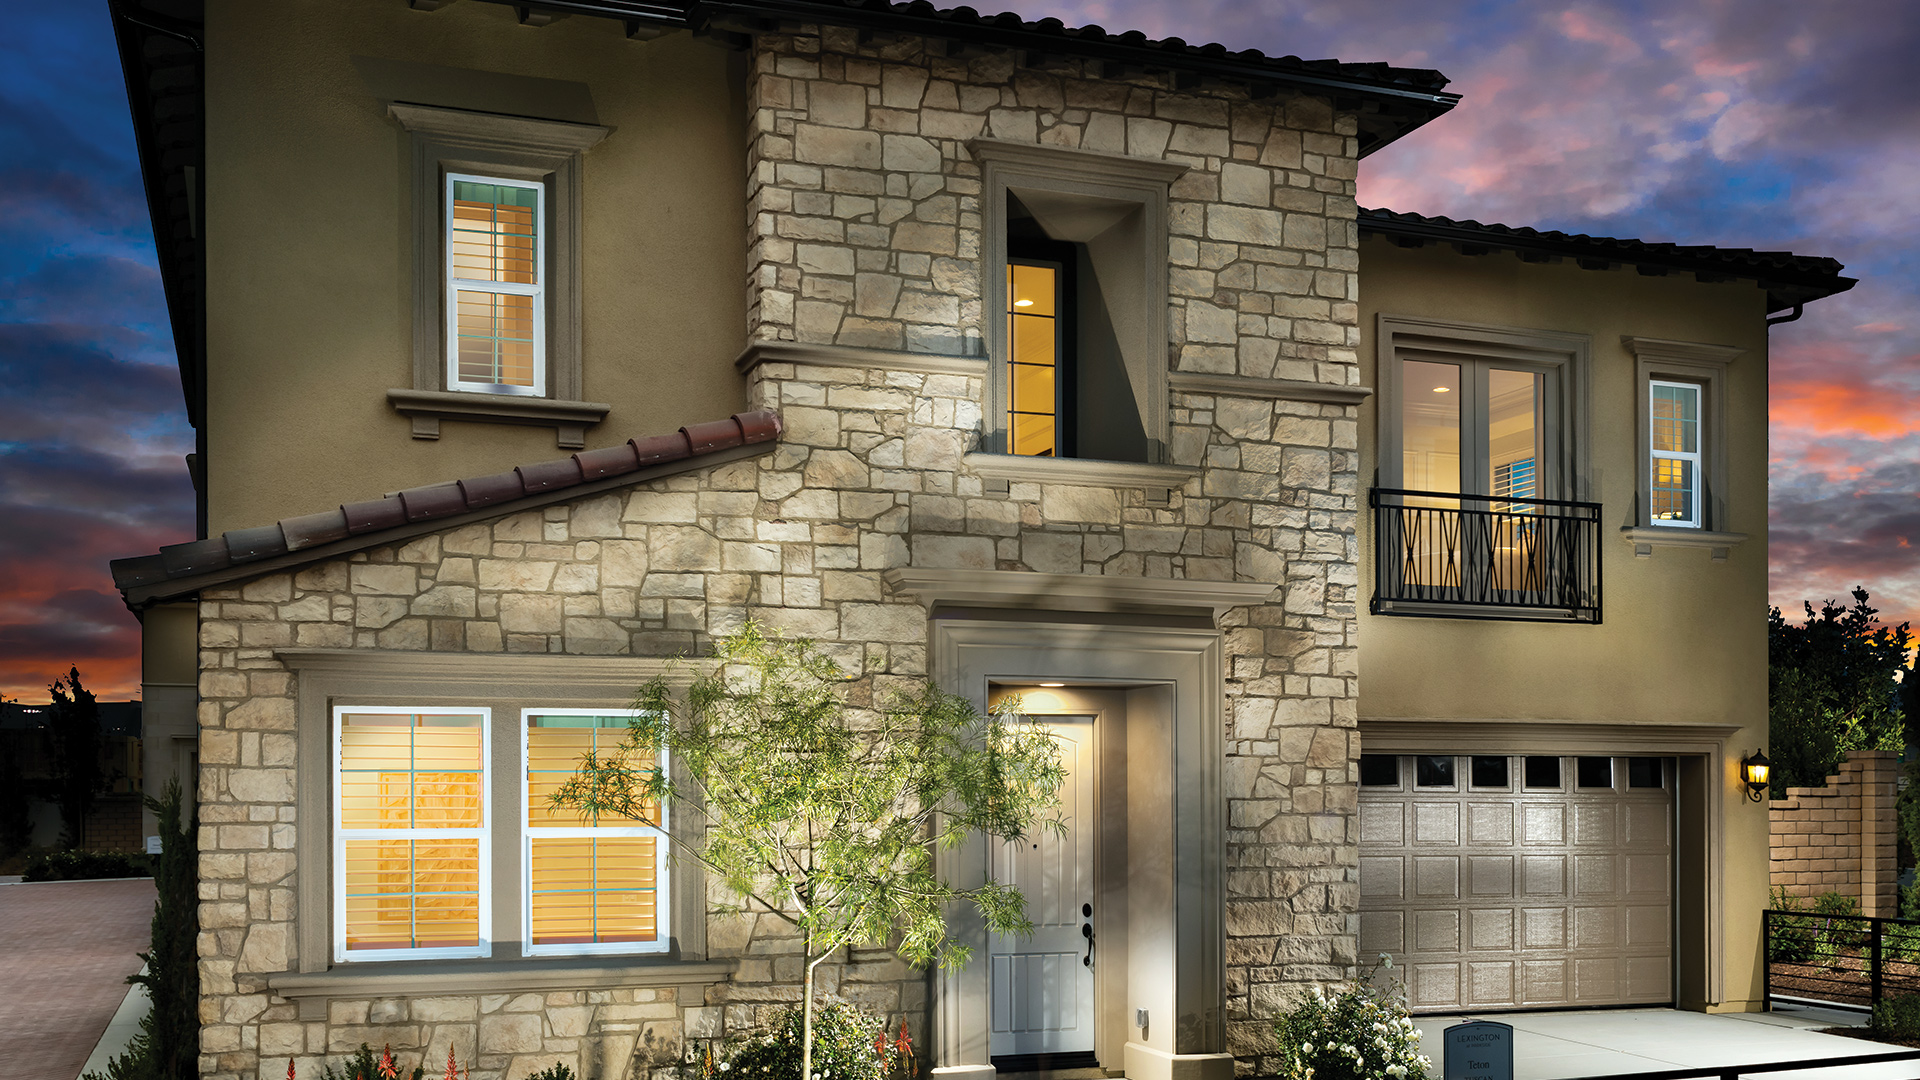 Luxurious new single family homes at lexington feature five 2 and 3 story home designs